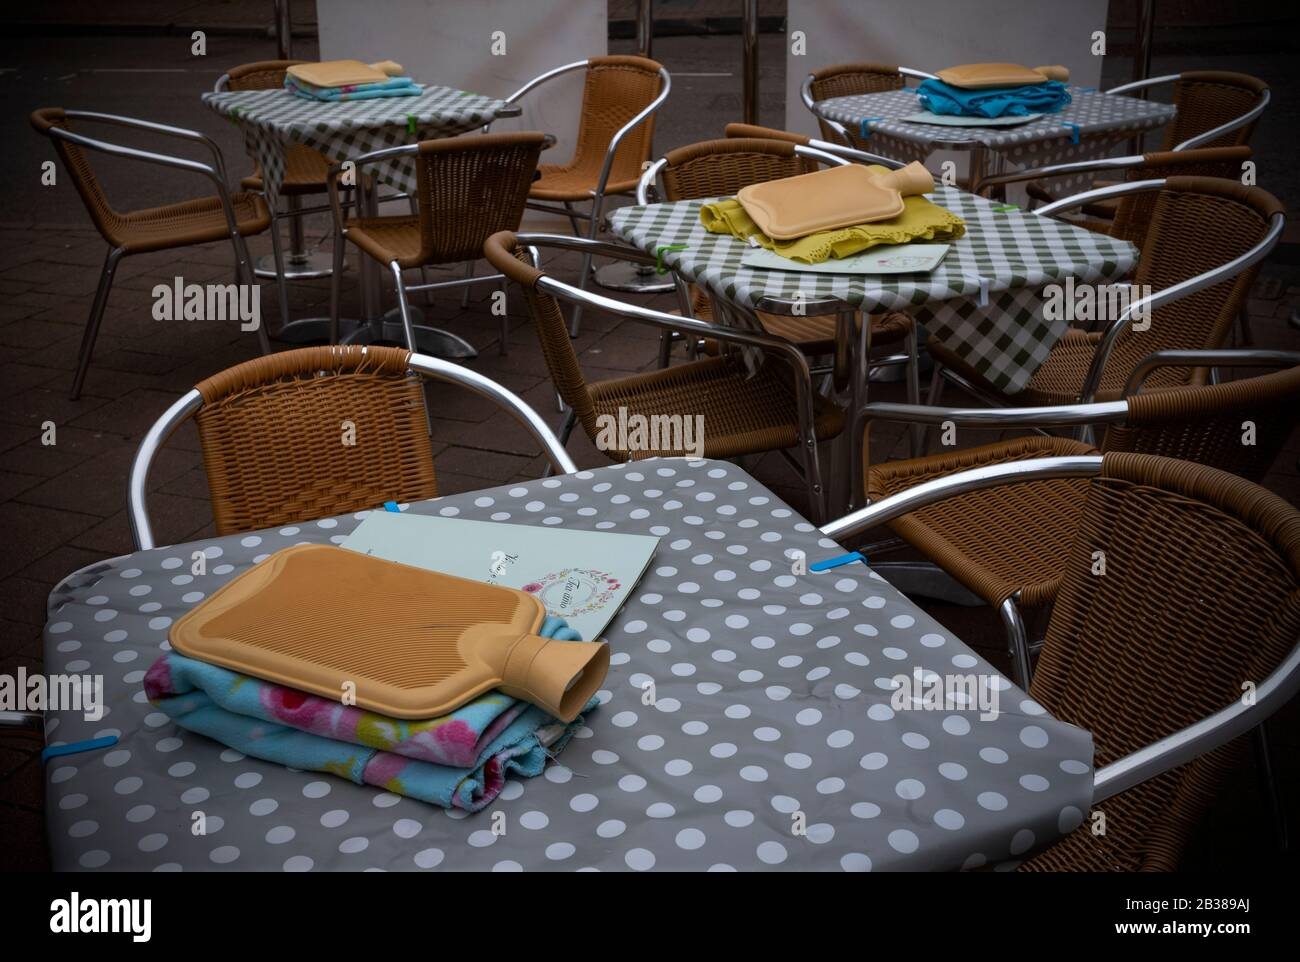 Saffron Walden, UK. 04th Mar, 2020. Saffron Walden Essex UK. Hot water bottle and blanket waiting for outdoor customers on a cold spring day at local Vintage Tea Rooms. 4 March 2020 Credit: BRIAN HARRIS/Alamy Live News Stock Photo